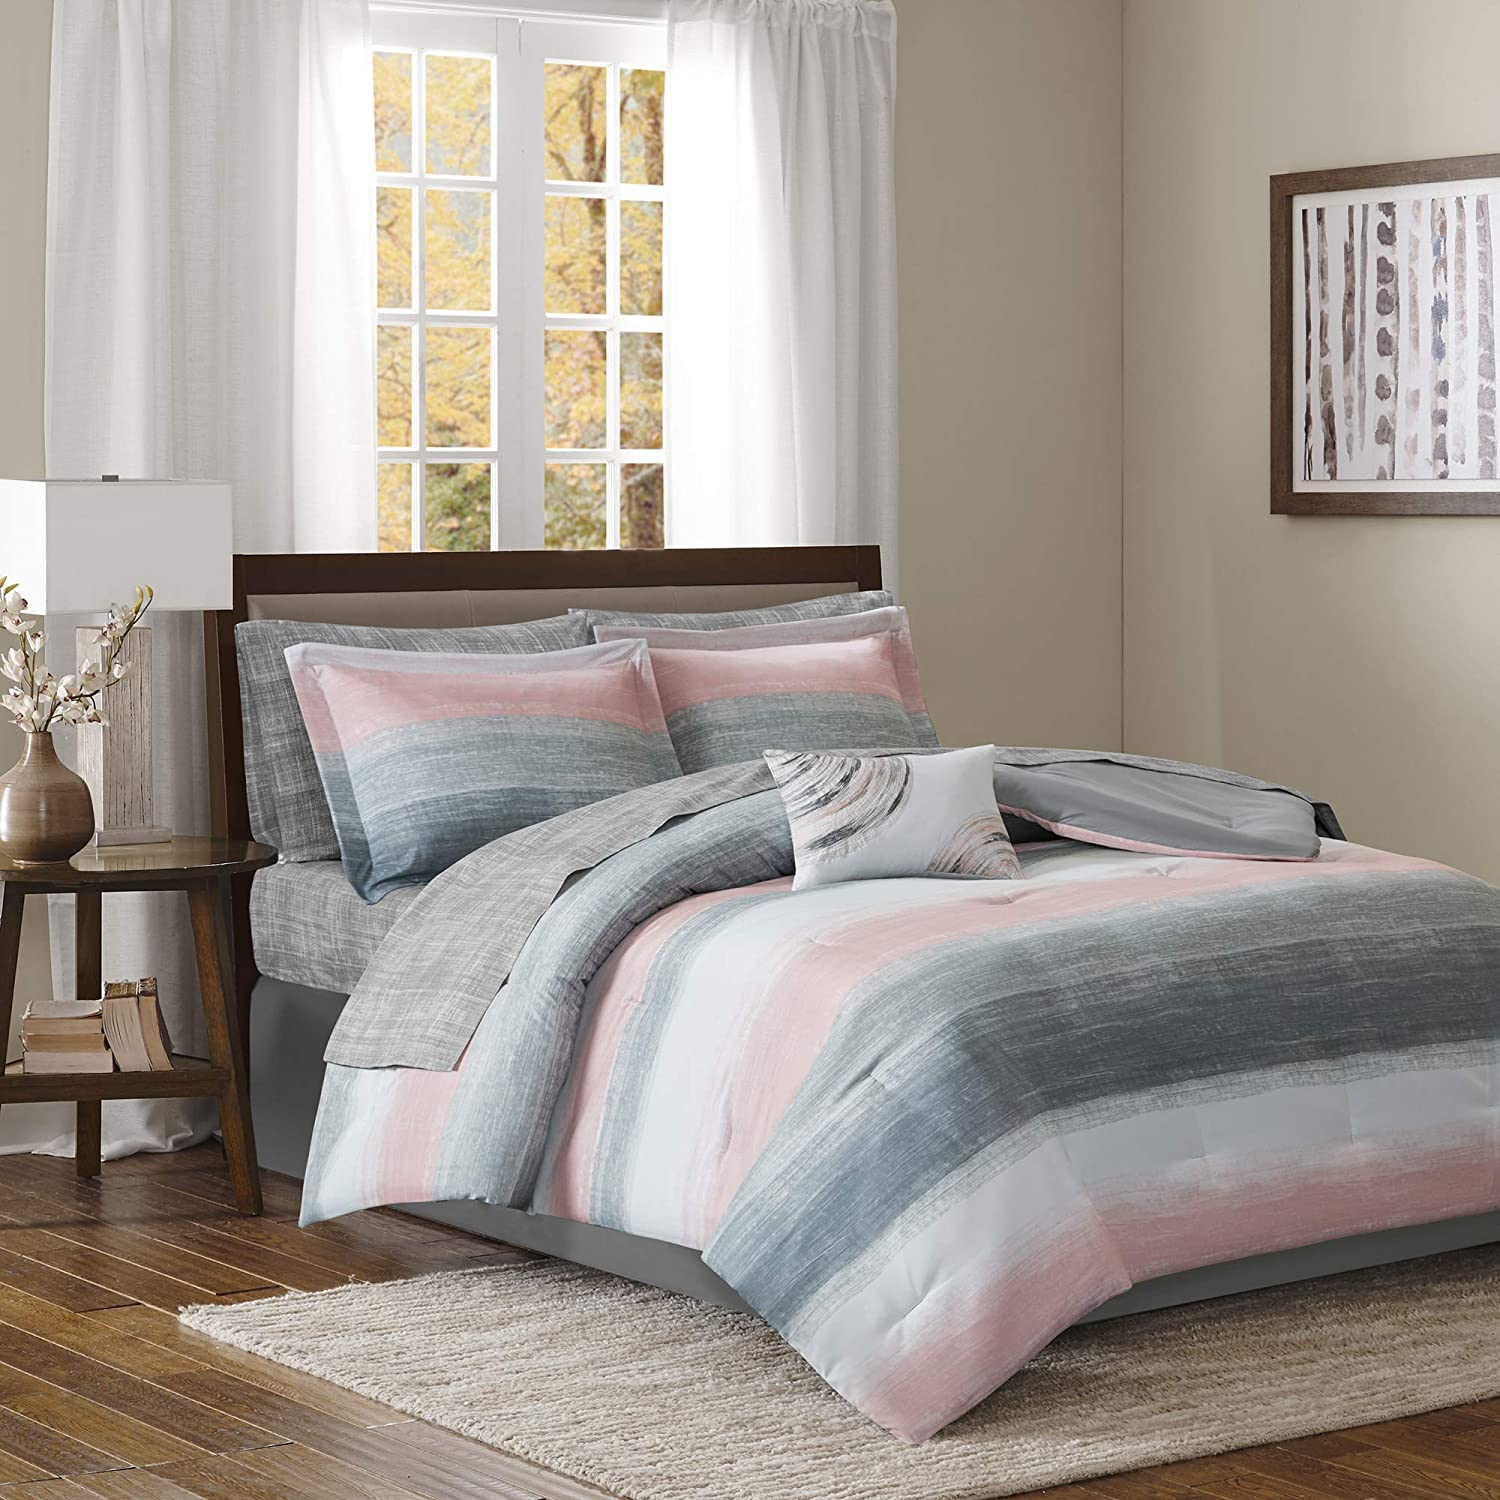 Madison Park Essentials Saben 9 Piece Complete Comforter and Cotton Sheet Set, California King, Blush